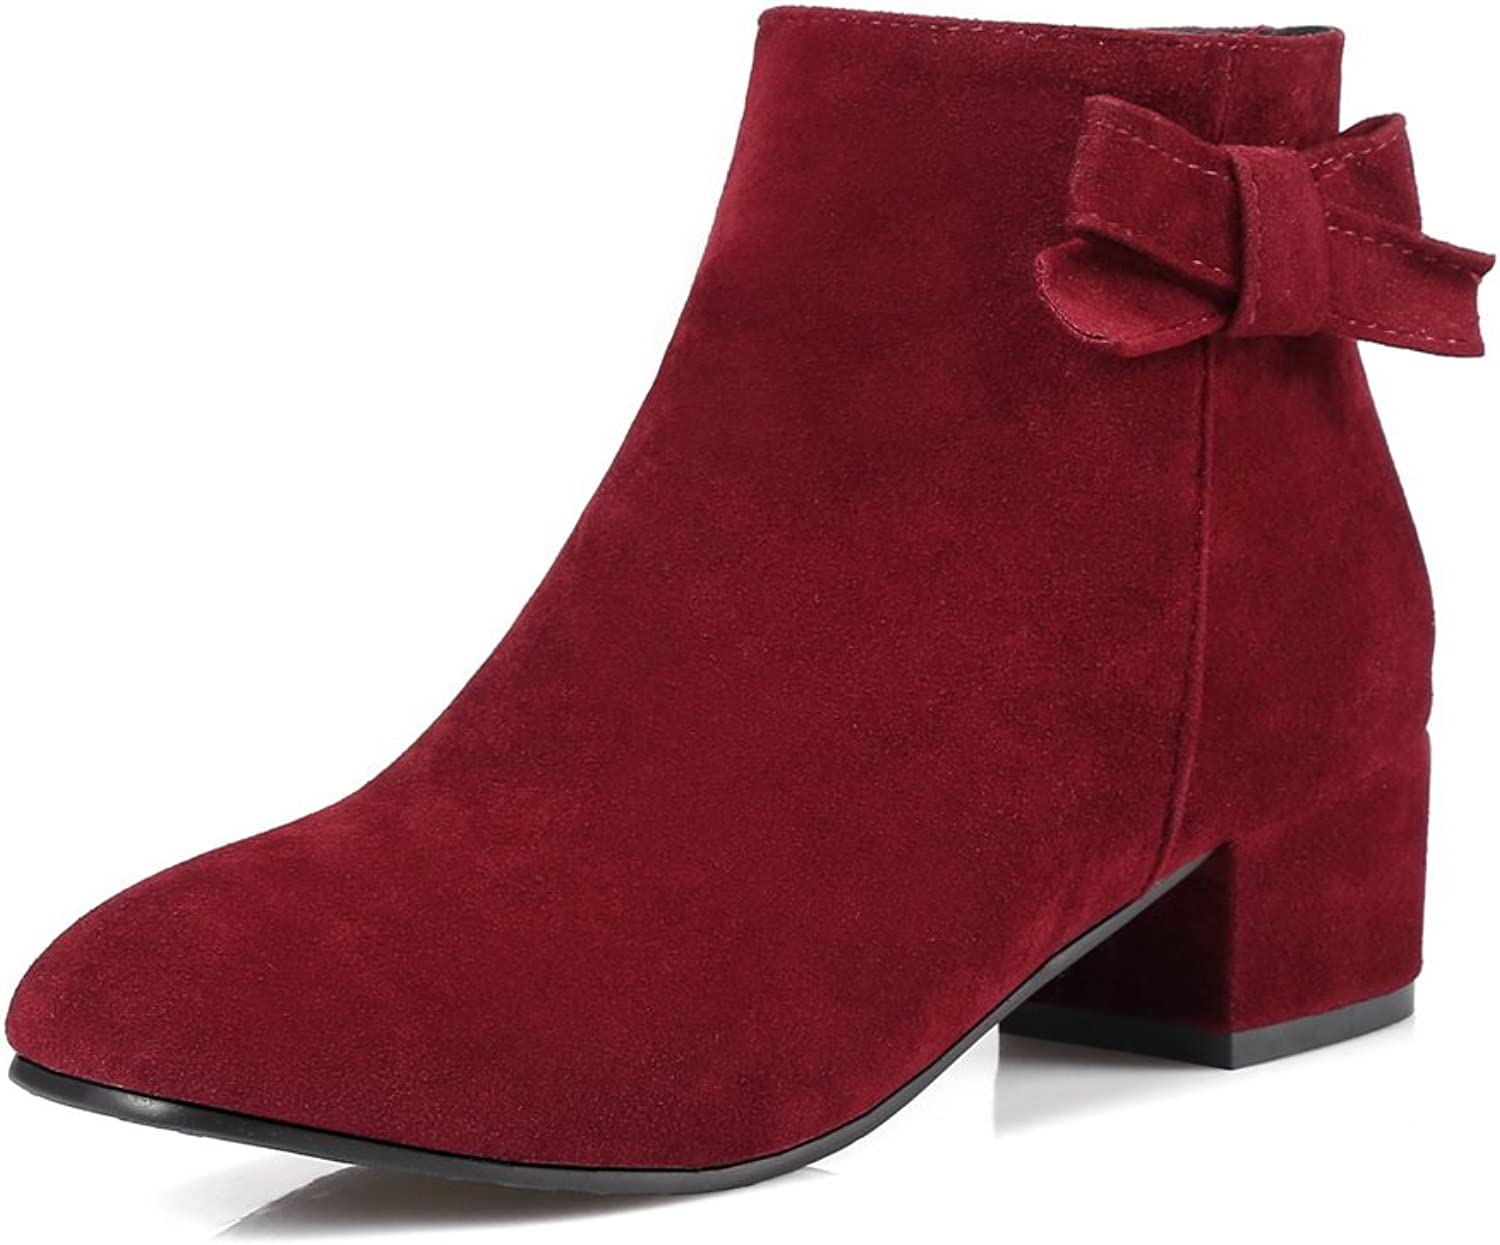 A&N Womens Boots Low-Top Zip Heeled Warm Lining Toggle Nubuck Pointed-Toe Suede Suede Boots DKU01777